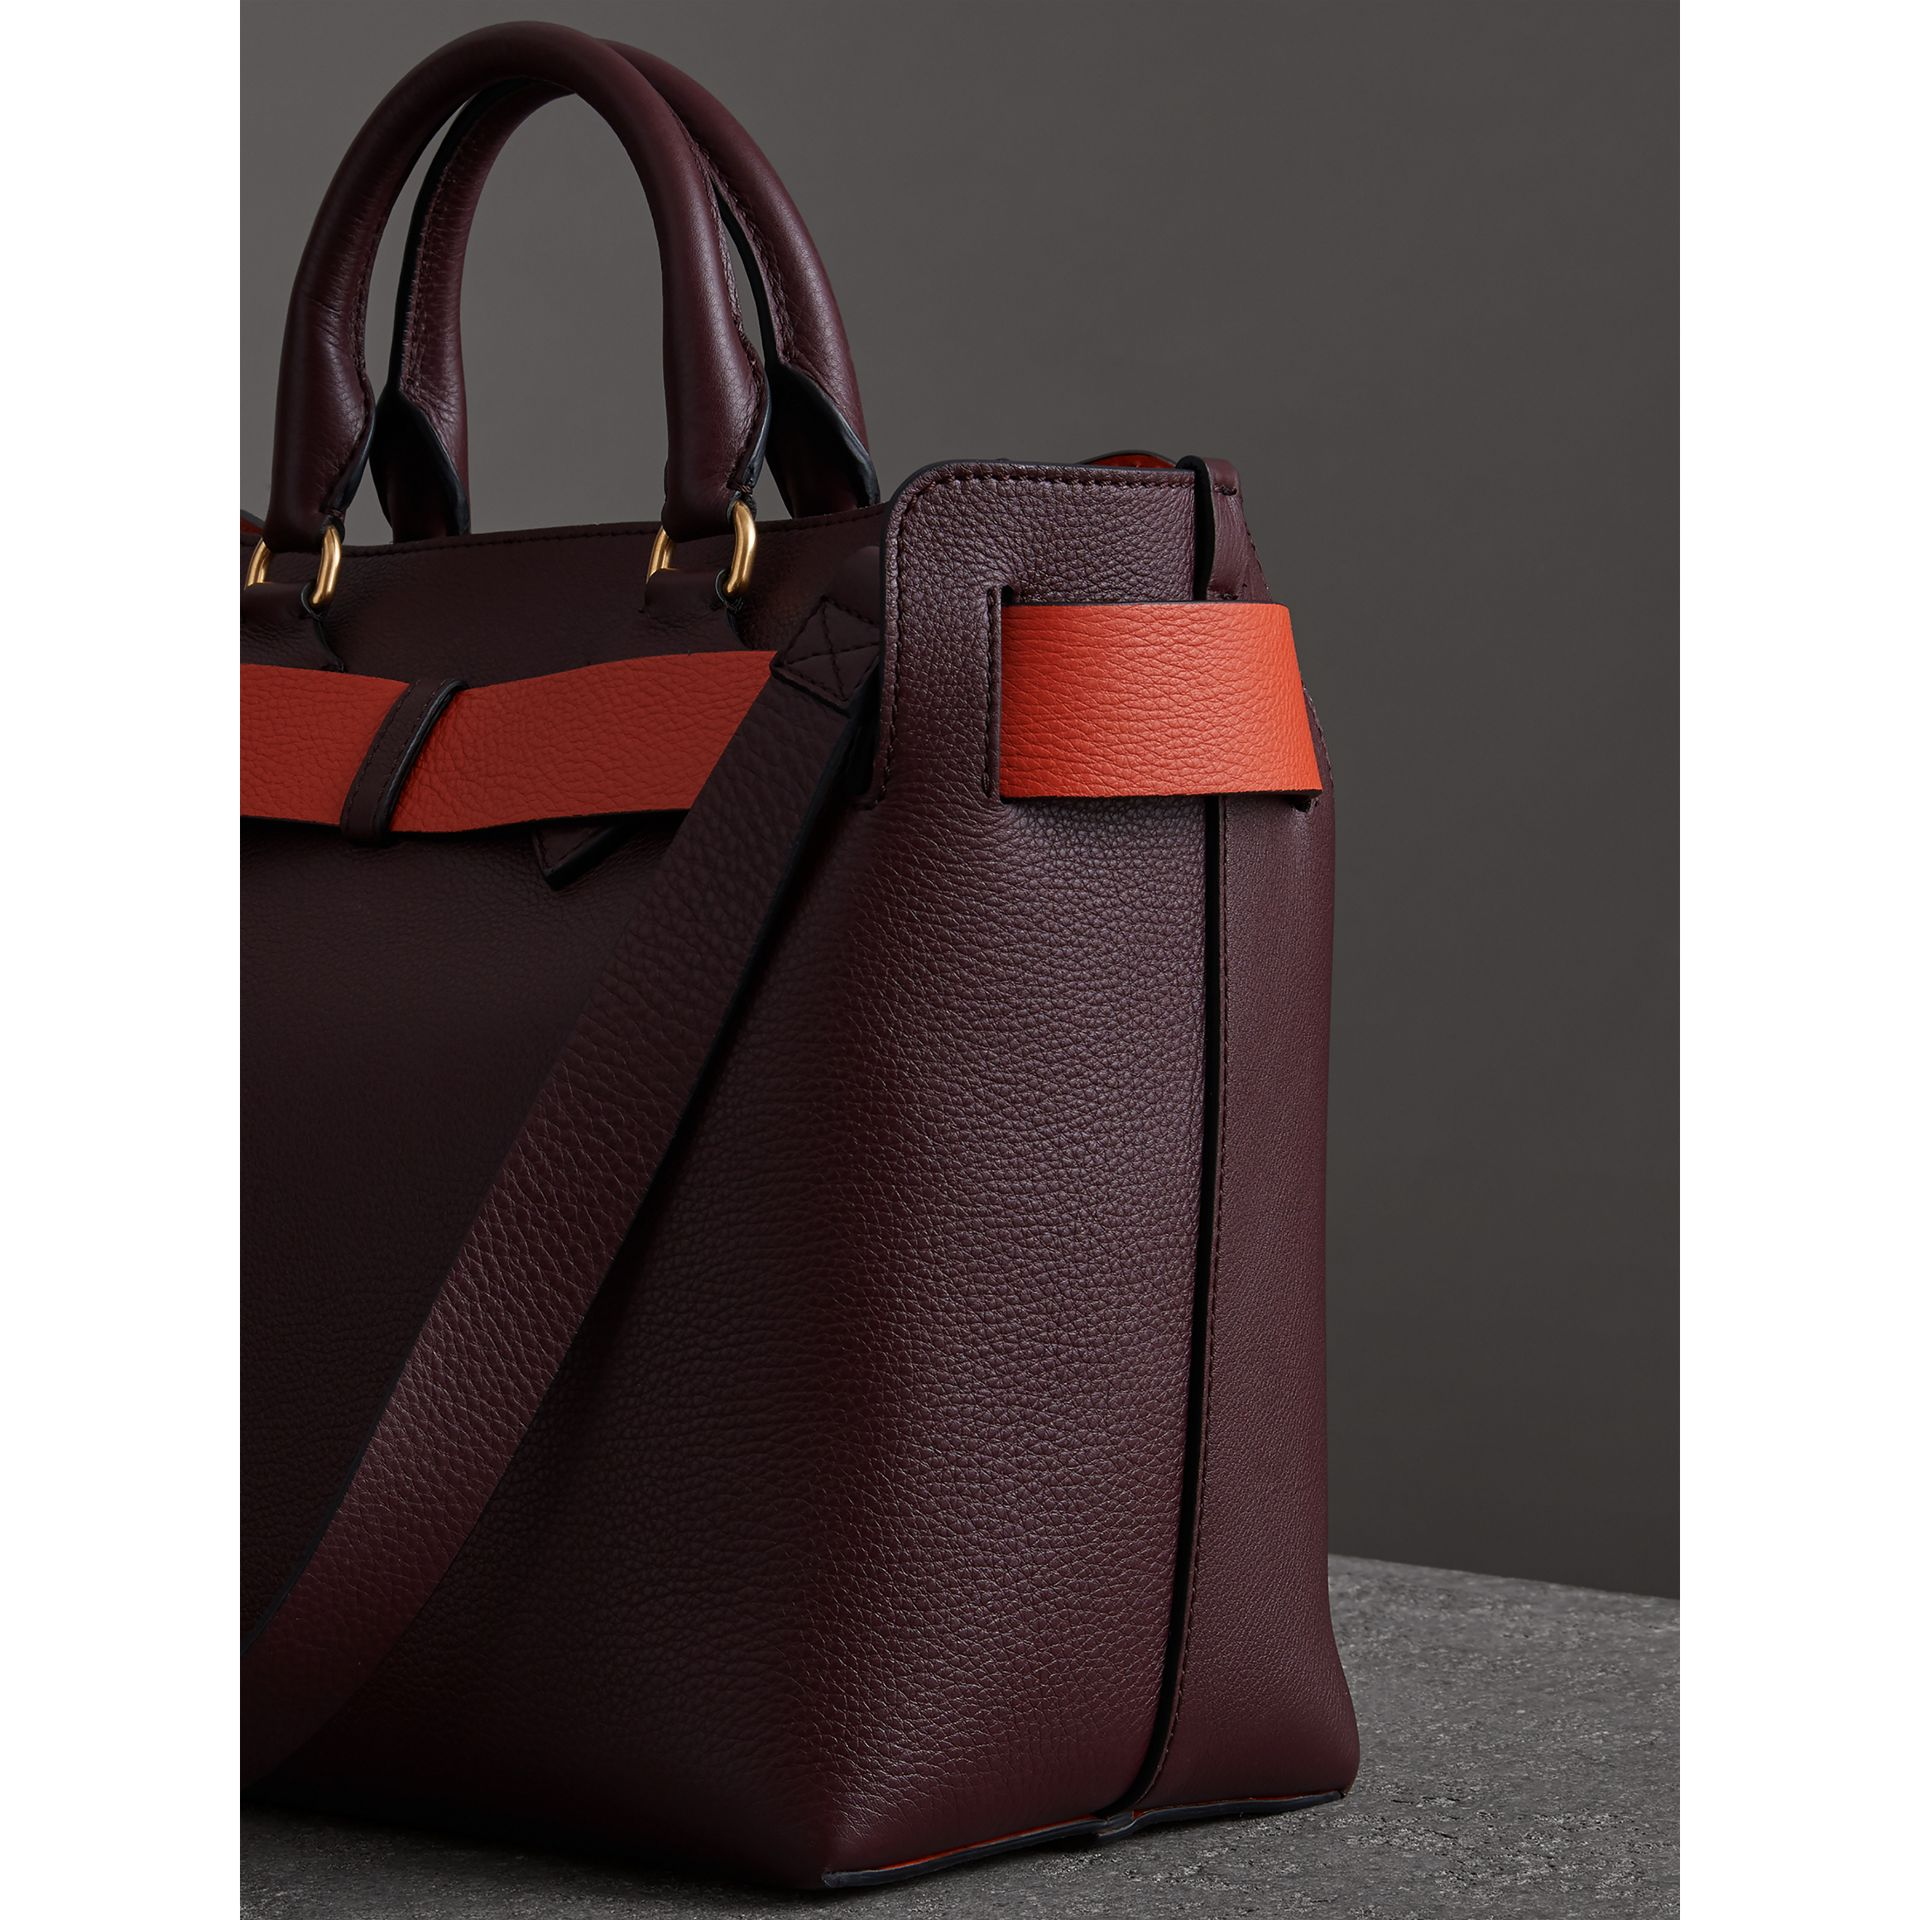 Sac The Belt moyen en cuir (Bordeaux Intense) - Femme | Burberry Canada - photo de la galerie 4